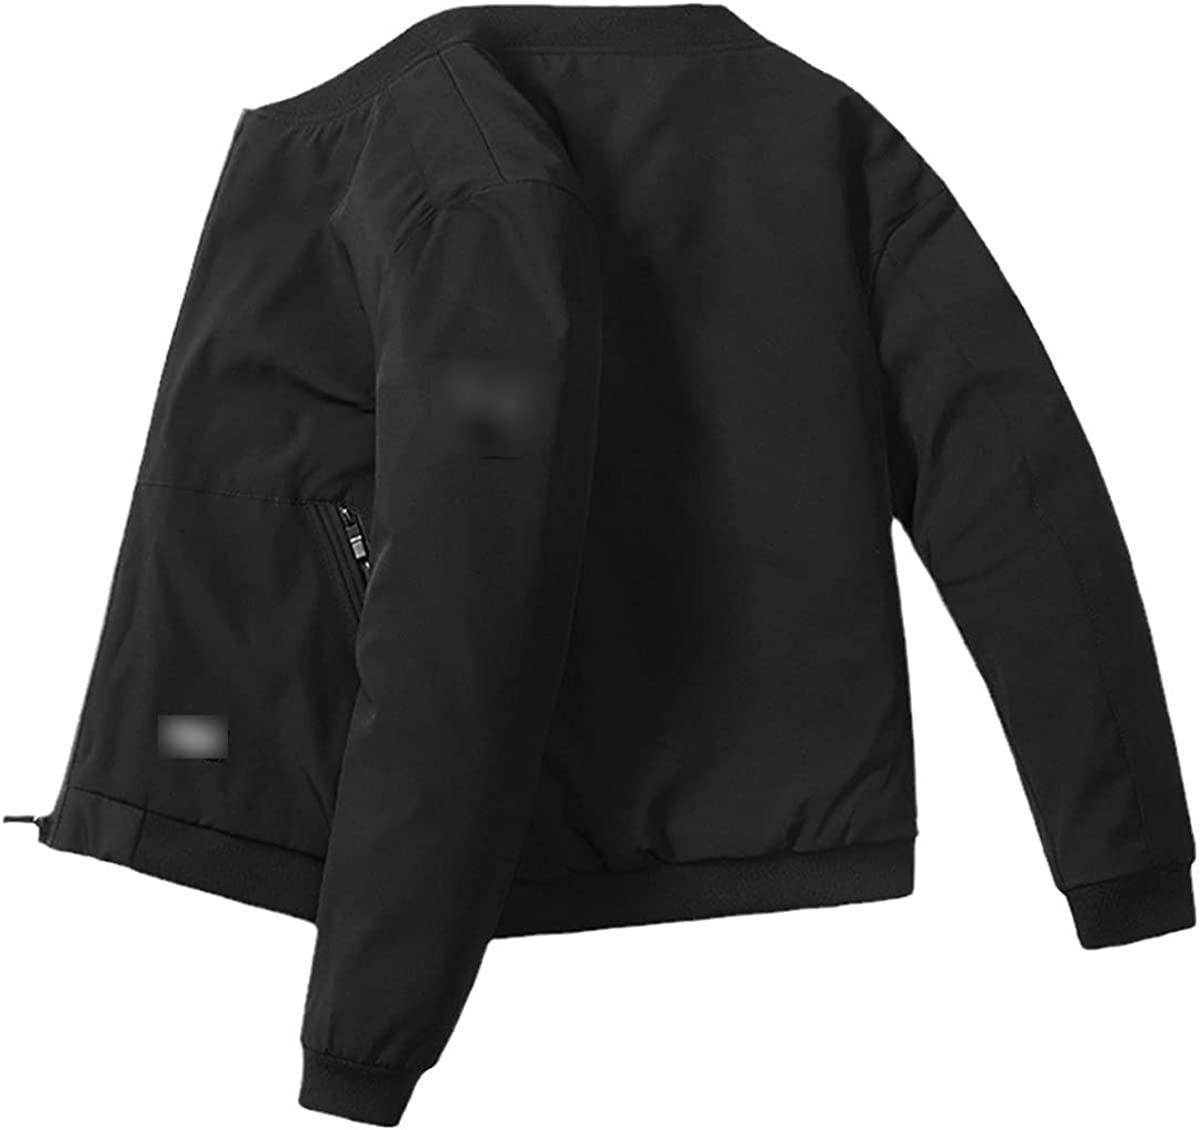 Fashionable Men's Jackets And Coats Stand-Collar Bomber Jackets